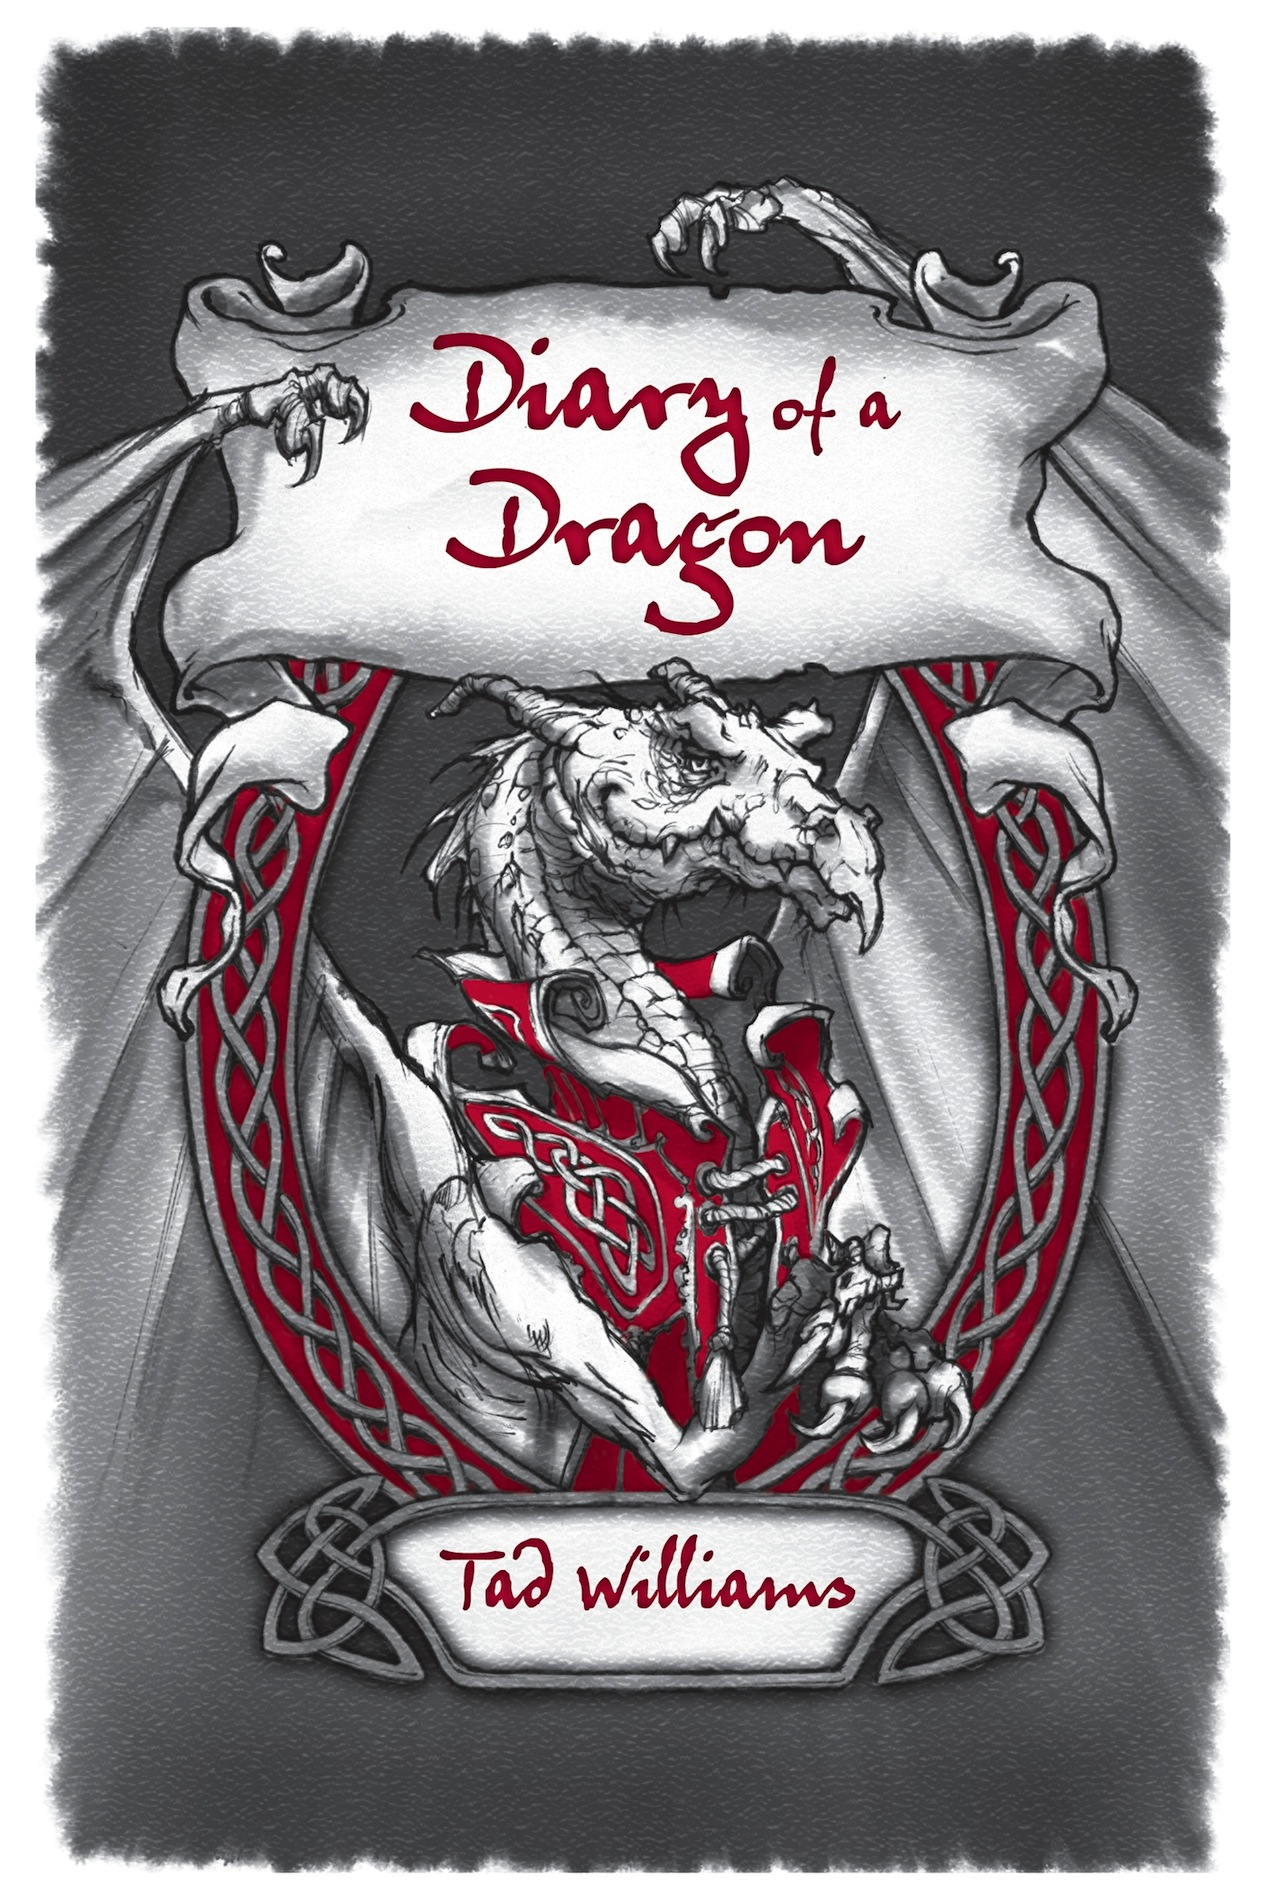 Diary of a Dragon By: Tad Williams